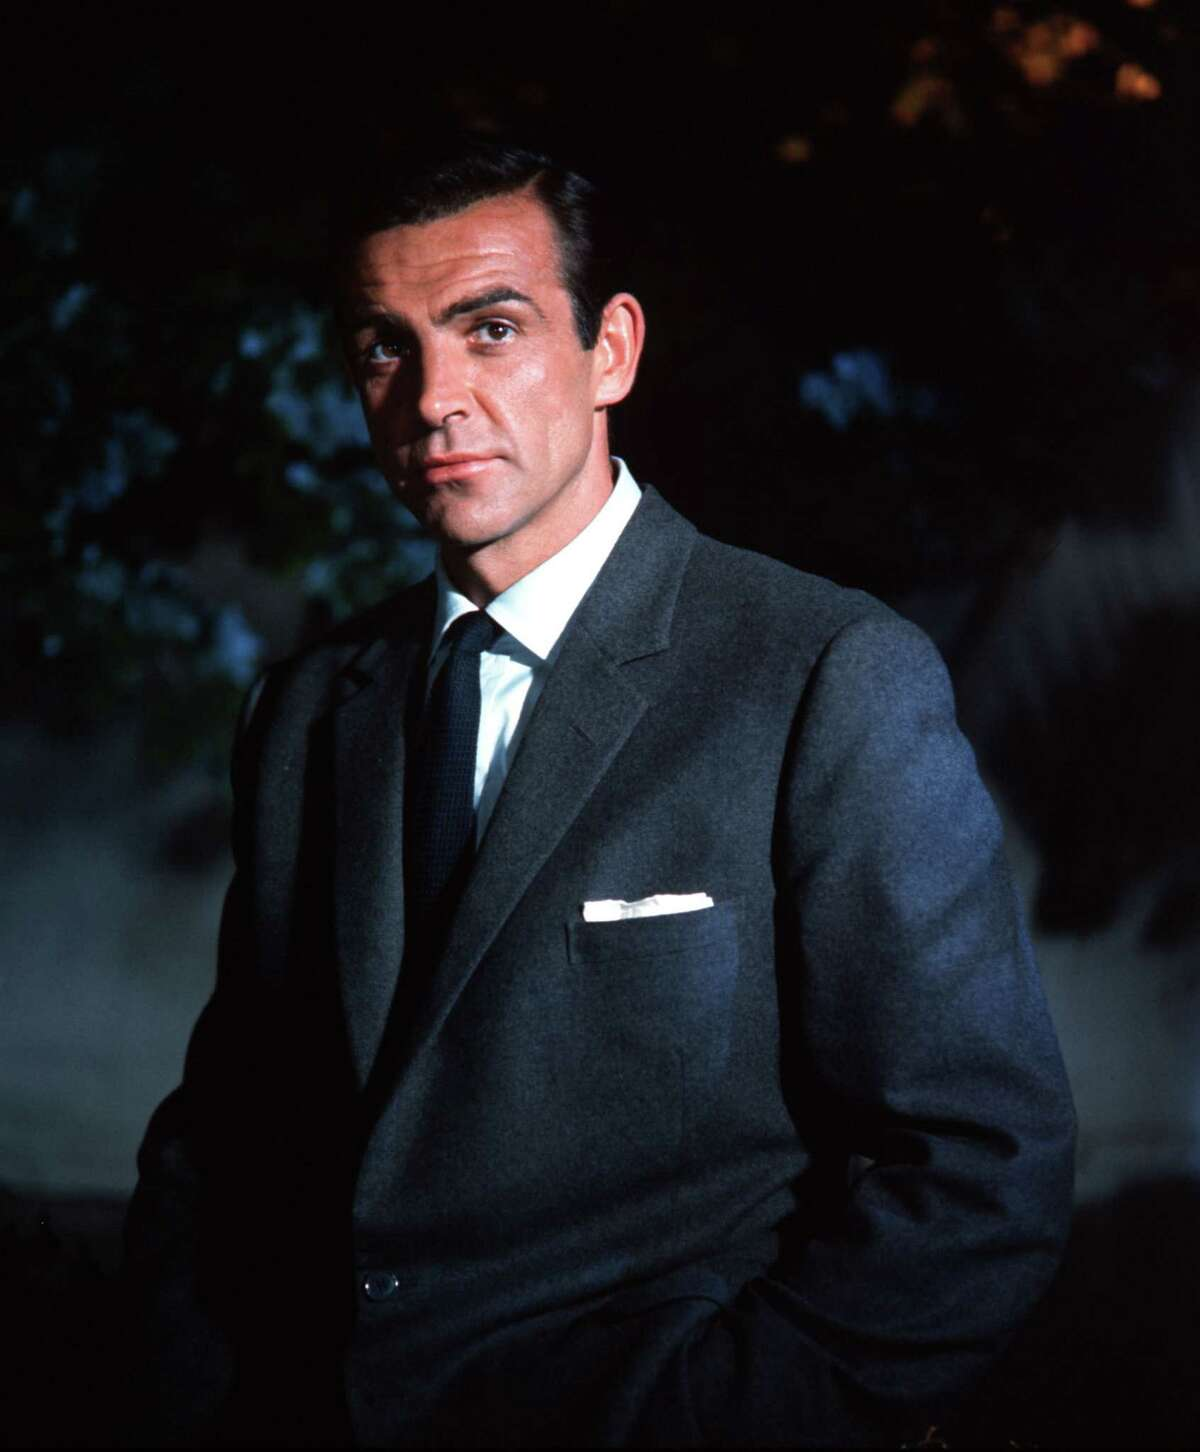 """England, 1963, Actor Sean Connery is pictured in the role of James Bond in the film """"Dr No"""" (Photo by Popperfoto/Getty Images)"""